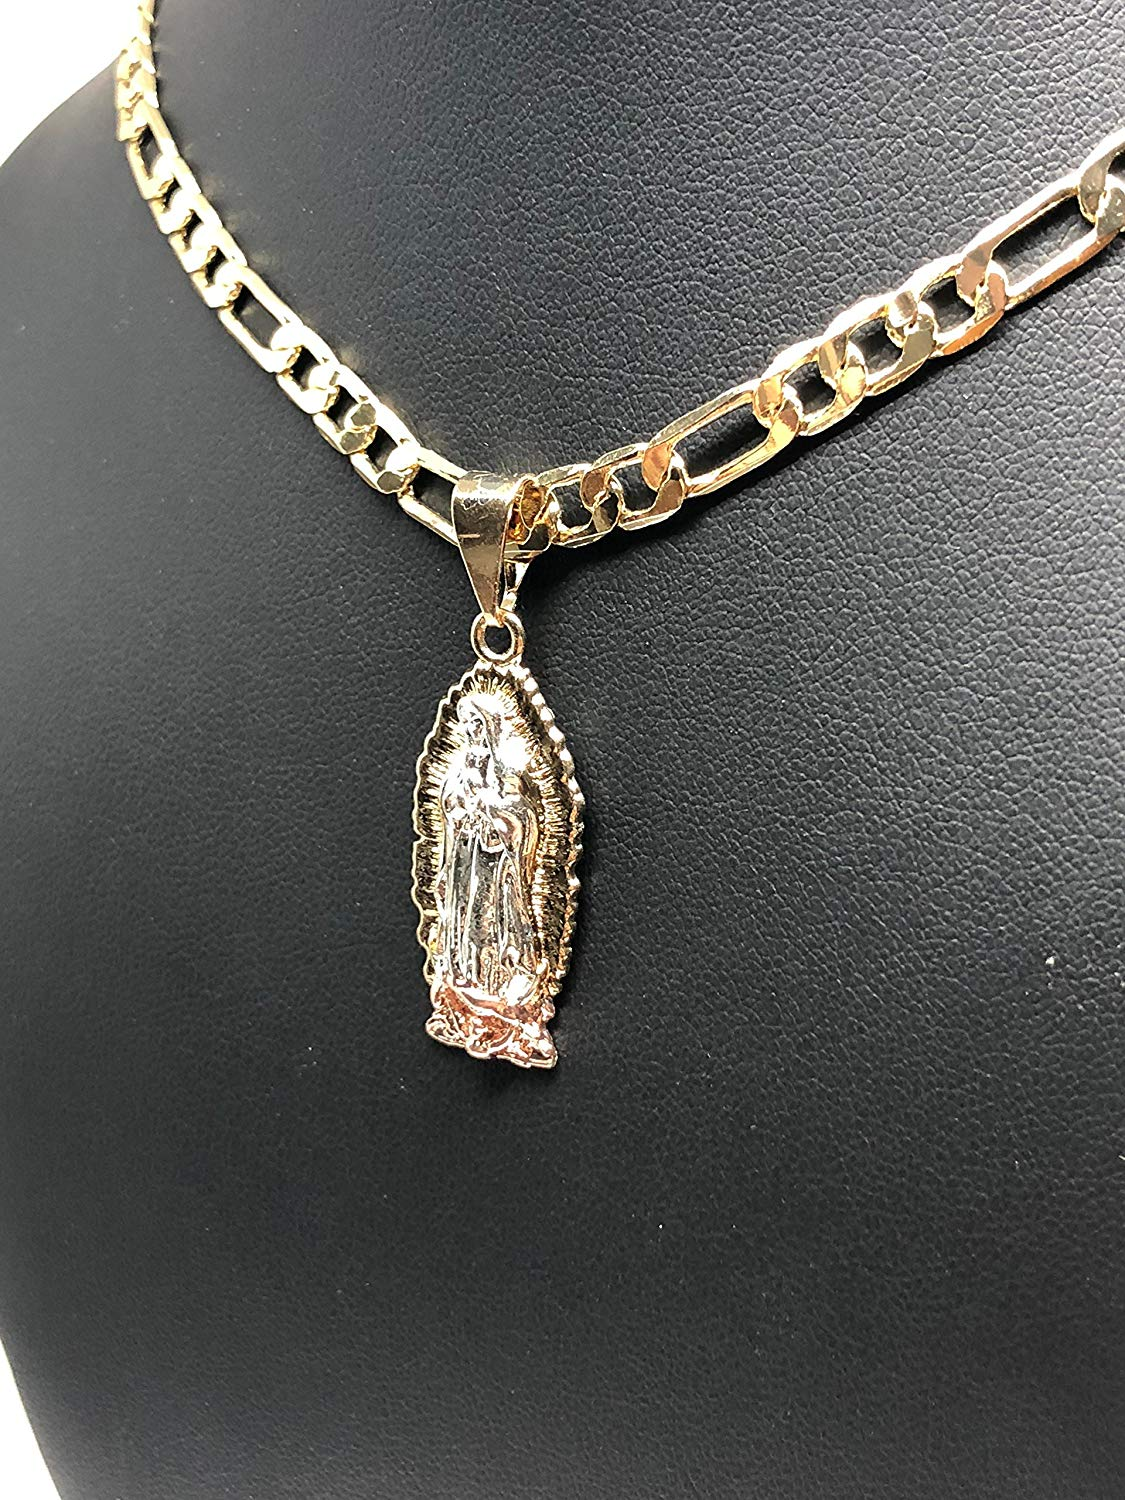 "Gold Plated Tri-Color Virgin Mary Necklace Pendant Virgen de Guadalupe Medalla Tres Colores Cadena 26"" - Fran & Co. Jewelry"